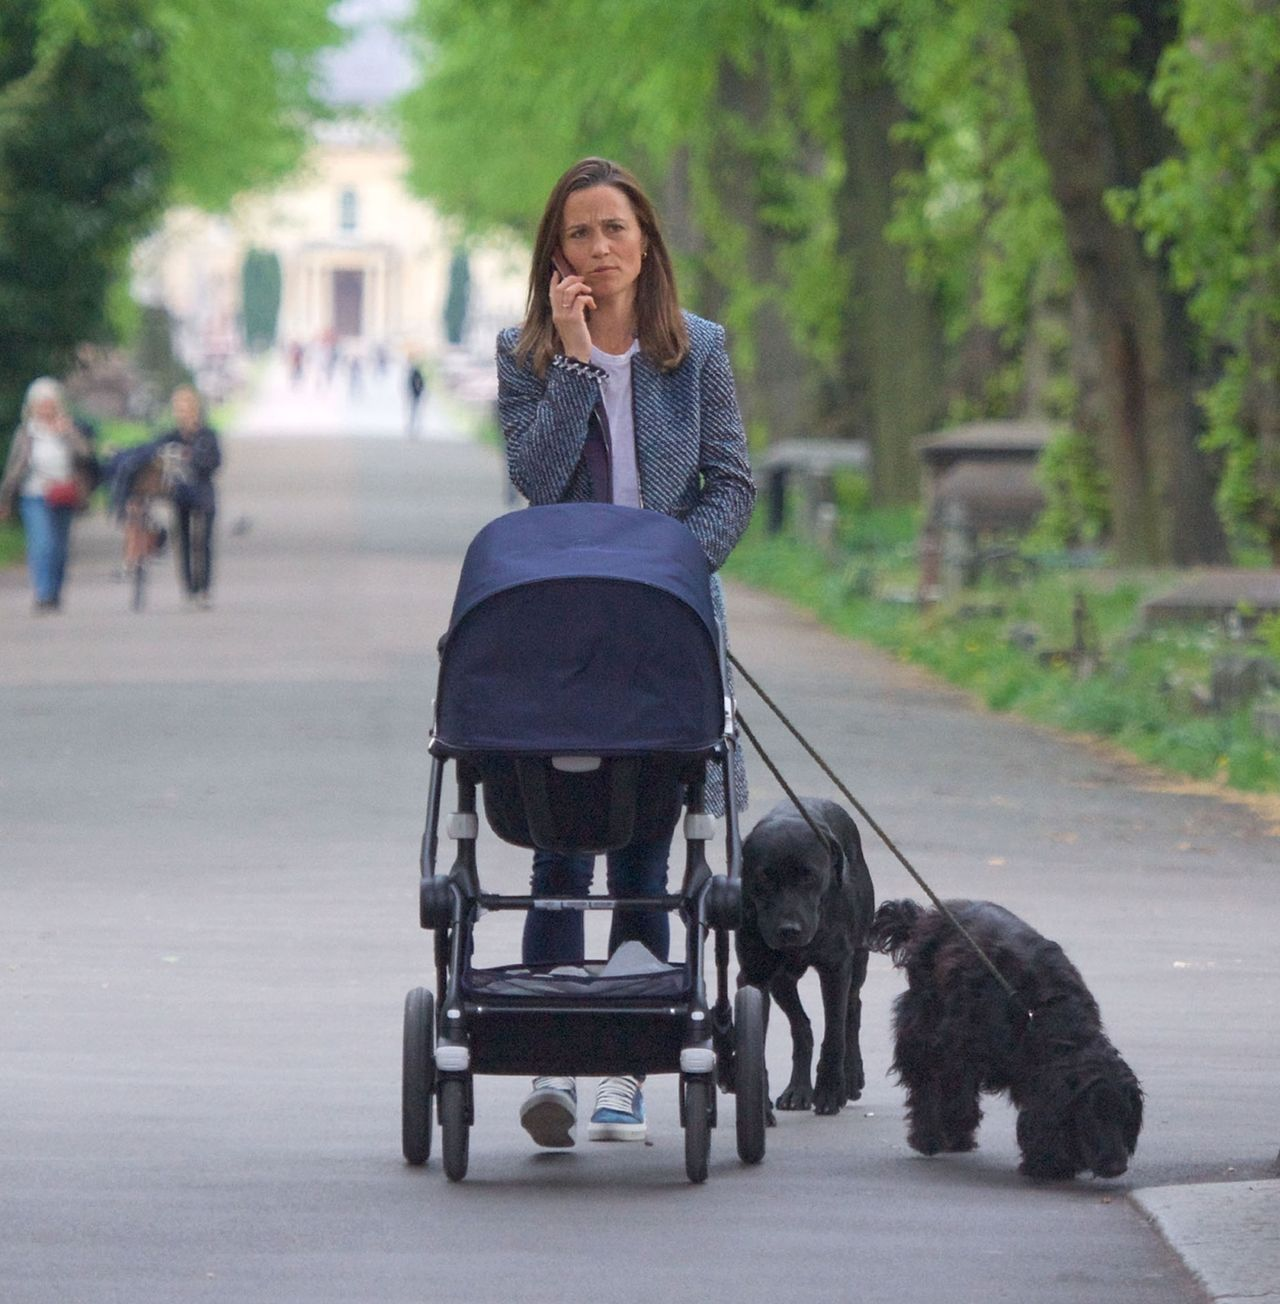 *EXCLUSIVE* *WEB MUST CALL FOR PRICING* Pippa Middleton is out walking her dogs along with her baby son Arthur for a brisk walk in the park